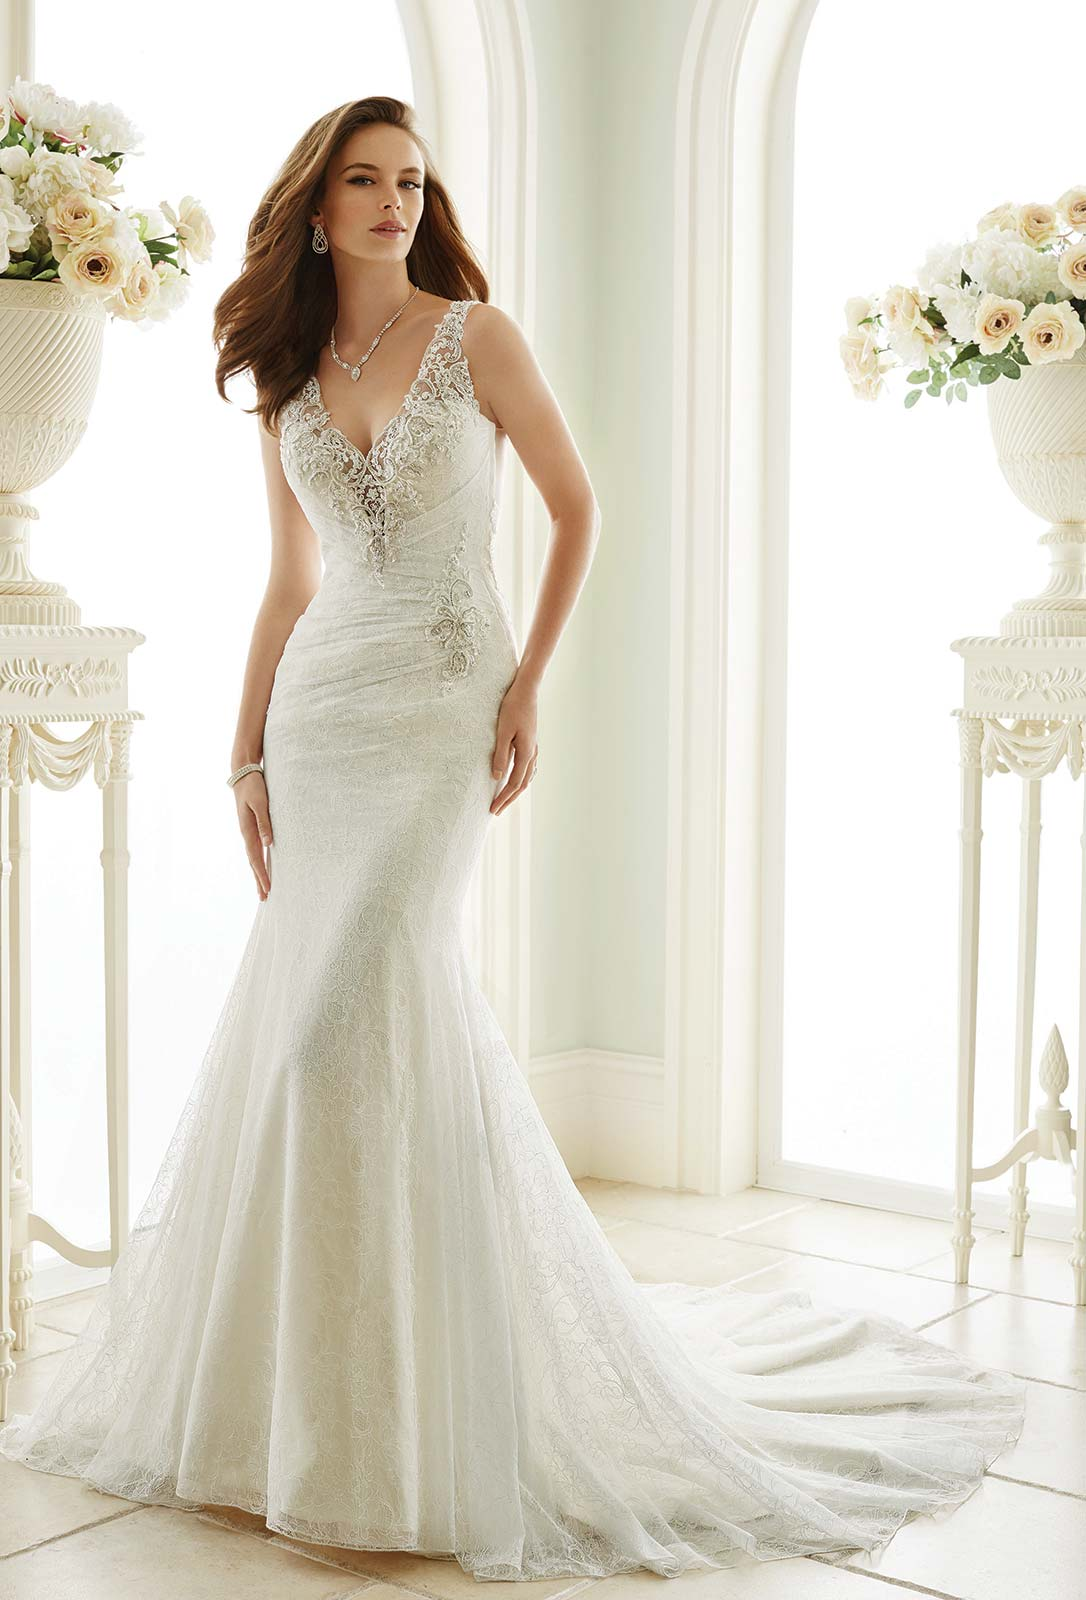 Sophia Tolli - Lucca - Was £1530 Now £650